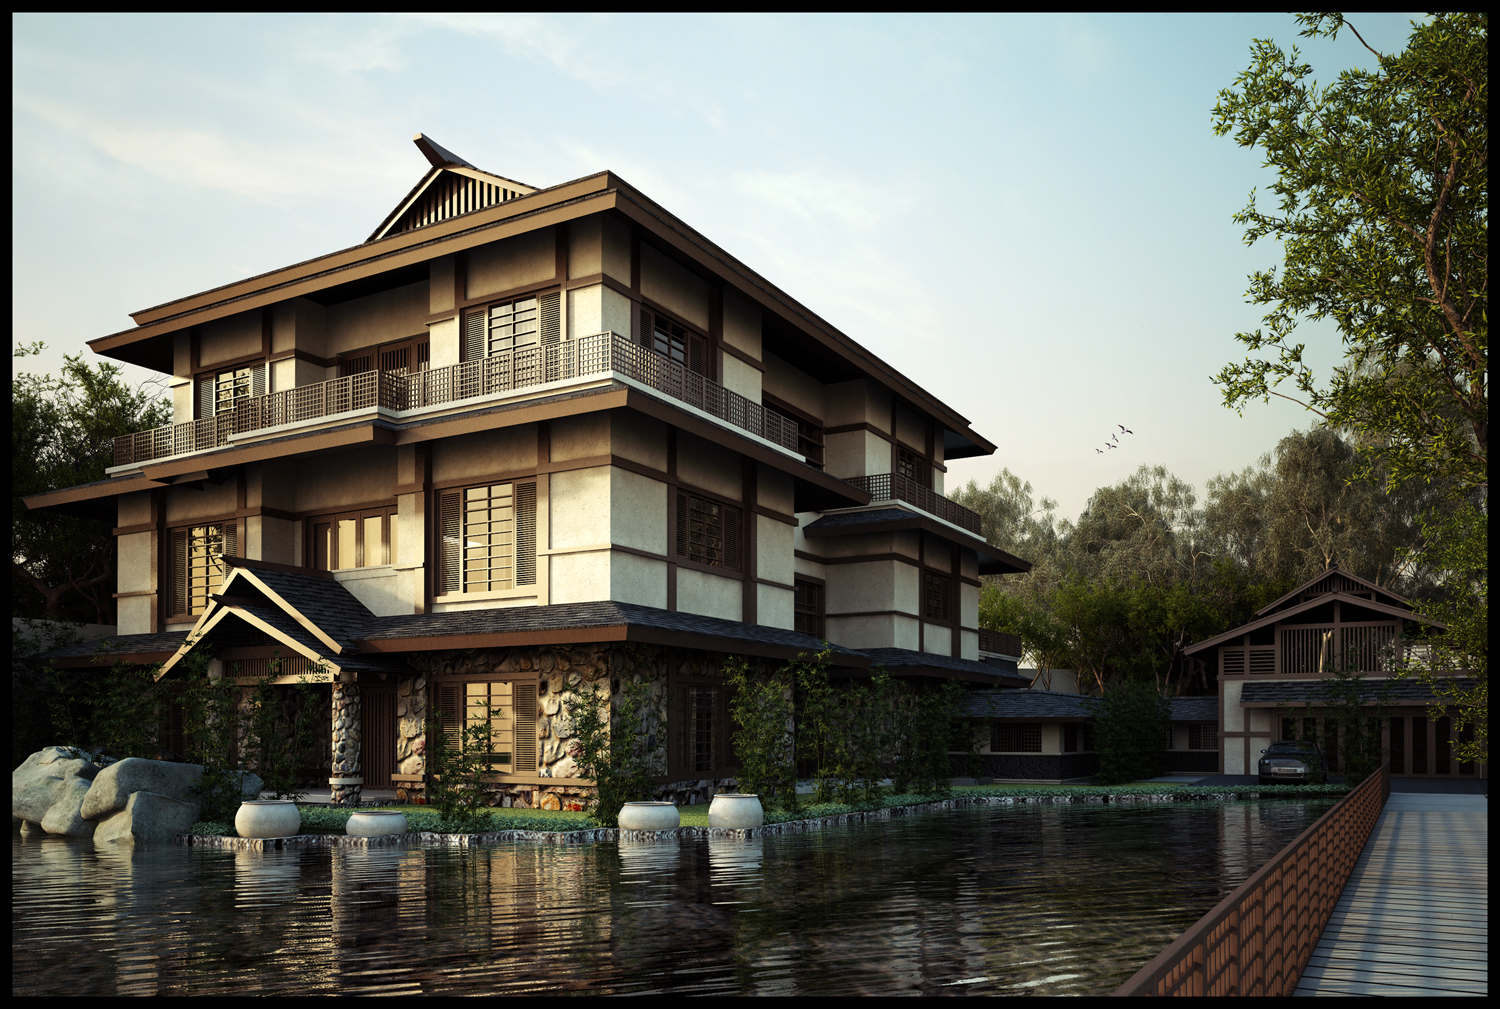 119 Japanese Style Home Plans   modern japanese style house modern         Designing a japanese style house home garden healthy for Japanese style  home plans